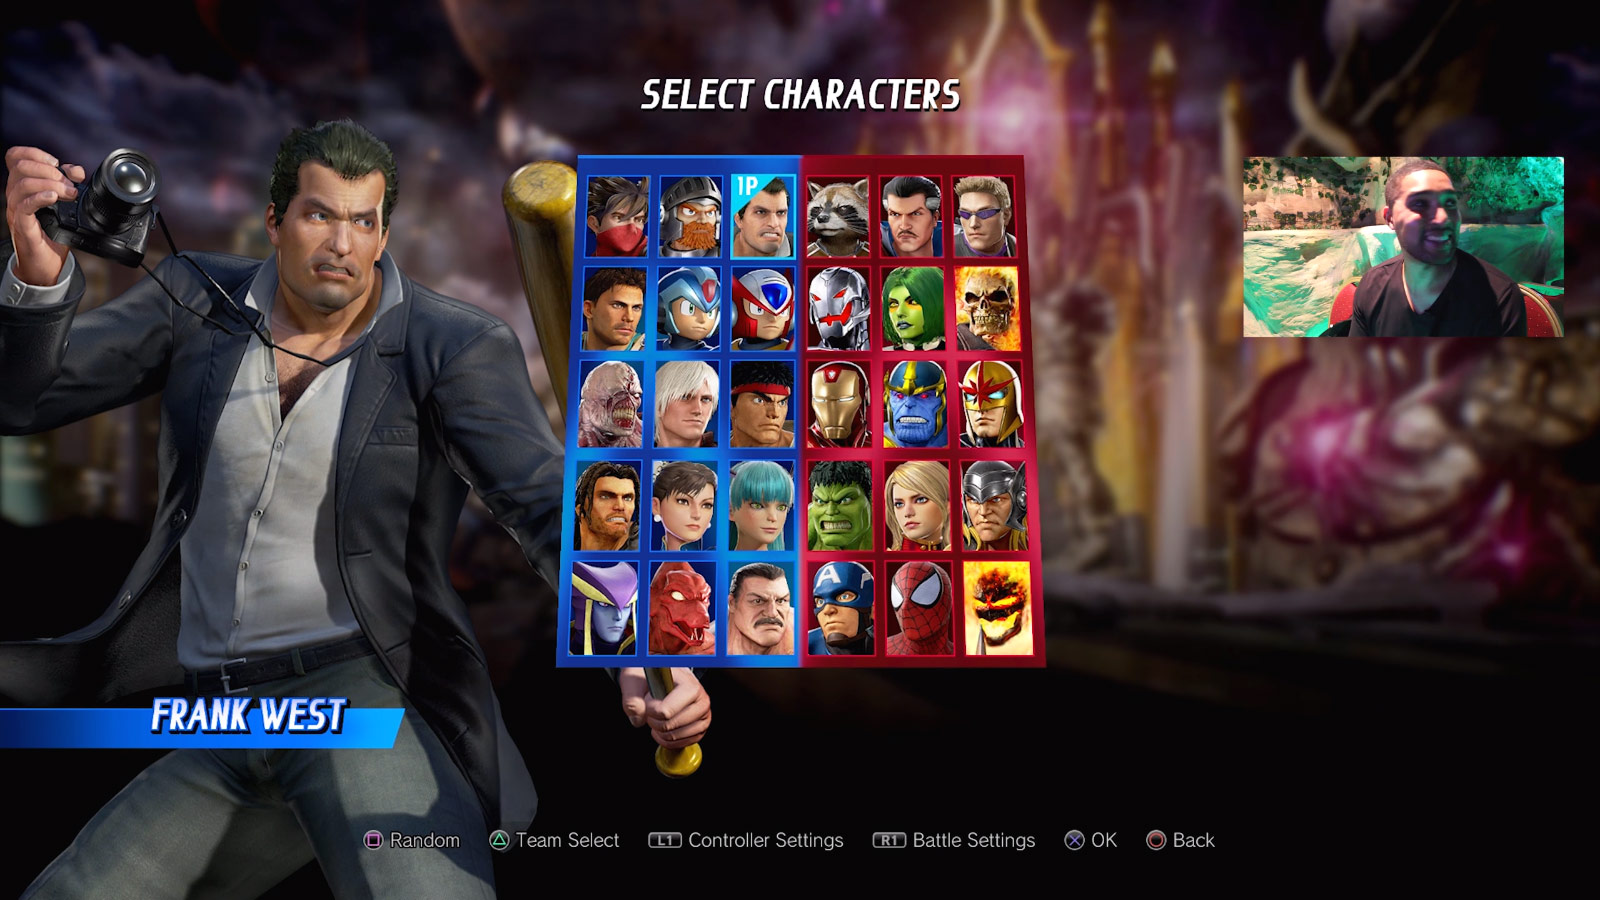 Marvel vs. Capcom: Infinite character select screen and menus 3 out of 6 image gallery